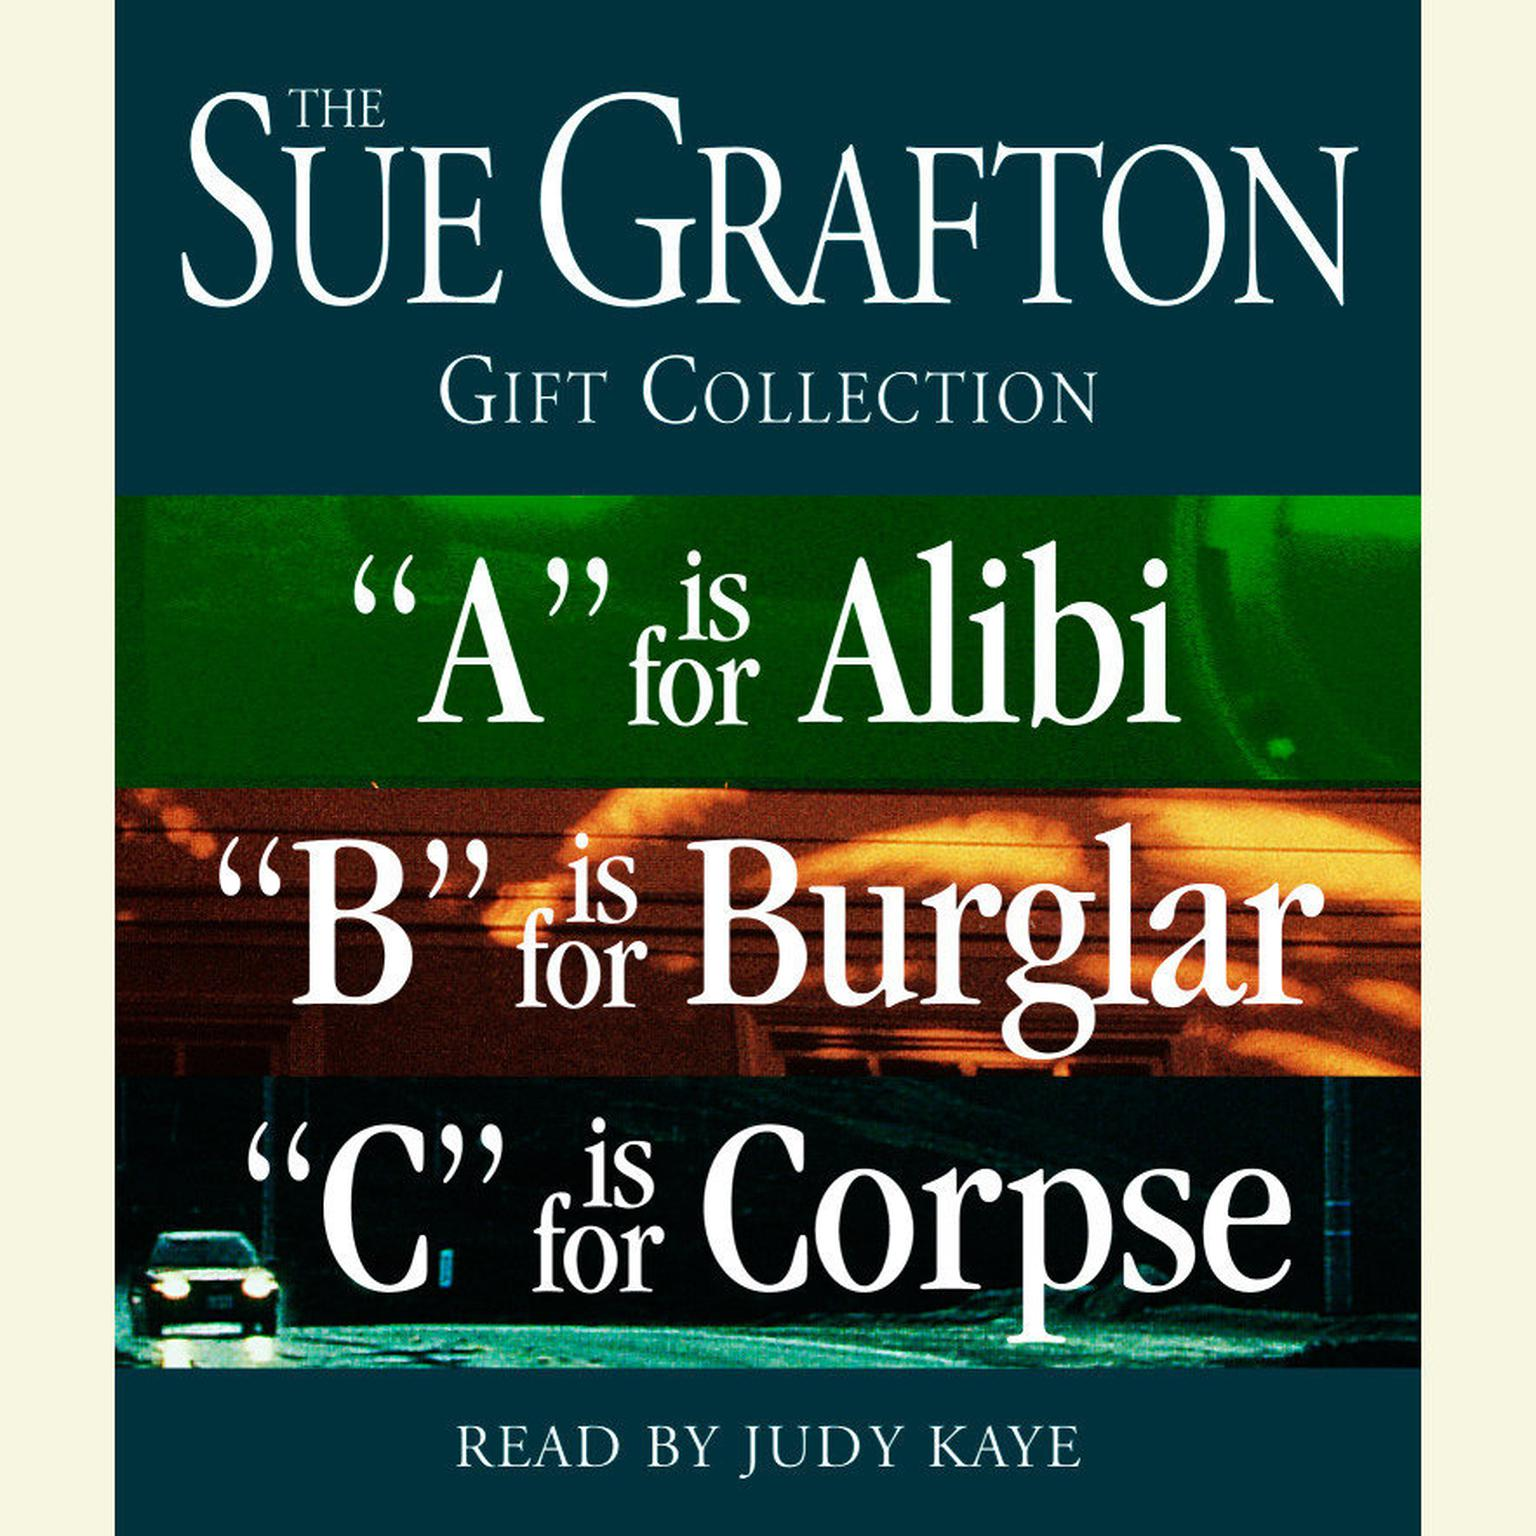 Printable The Sue Grafton ABC Gift Collection: 'A' Is for Alibi, 'B' Is for Burglar, 'C' Is for Corpse Audiobook Cover Art